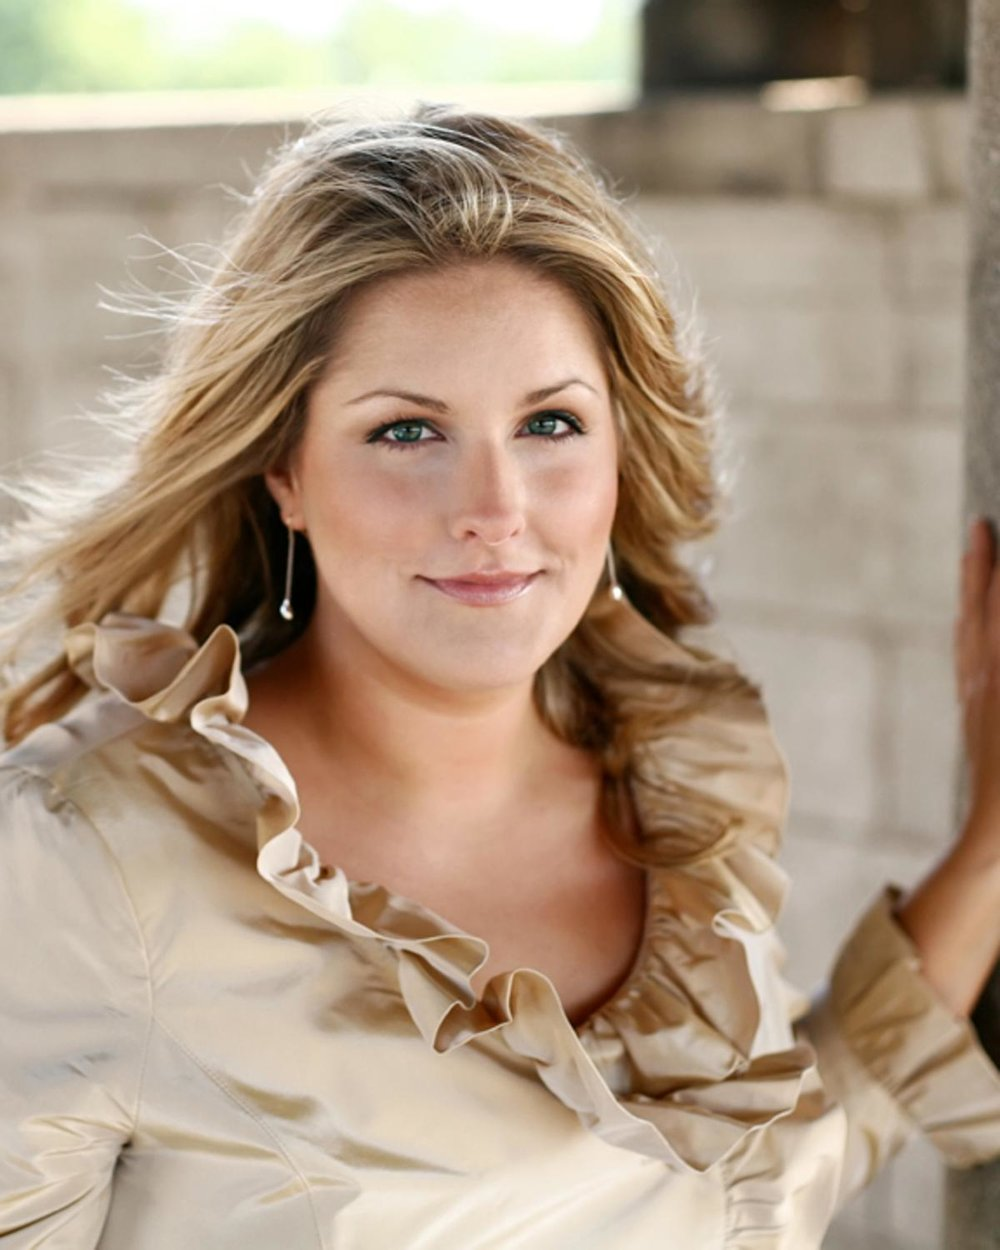 "Kathryn Leemhuis, mezzo-soprano - American mezzo-soprano Kathryn Leemhuis has performed with international opera companies such as the Lyric Opera of Chicago, Dallas Opera, Cincinnati Opera, Teatro Colón, Fort Worth Opera, Opera Theatre of St. Louis, Florentine Opera, Chicago Opera Theater, Ash Lawn Opera, and Annapolis Opera, among others. One of her most notable roles is Dorabella in Mozart's Cosi fan tutte, for which Kathryn has been hailed as ""ravishing,"" adding that ""her sheer vocal beauty allied to nimbleness and an astonishing range of dynamic and coloristic nuance,"" (Dallas Morning News). Her other prominent roles include Suzuki in Puccini's Madama Butterfly, Dido in Pucell's Dido and Aeneas, Zerlina in Mozart's Don Giovanni, the Mother in Menotti's Amahl and the Night Visitors, Paquette in Bernstein's Candide, Hänsel in Humperdinck's Hänsel und Gretel, Giulietta in Offenbach's Les contes d'Hoffmann, Amaltea in Rossini's Mosè in Egitto, and Florence Pike in Britten's Albert Herring.As a mezzo-soprano soloist on the concert stage, Kathryn has performed at Carnegie Hall, the Ravinia Festival, the Grant Park Music Festival, the Boise Philharmonic, with the Los Angeles Philharmonic at the Hollywood Bowl, and the Boston Symphony Orchestra at the Tanglewood Music Festival. She performed with Chicago's Music of the Baroque in both Haydn'sMissa in Angustiis and Mass in the Time of War, with the Apollo Chorus of Chicago in Händel's Messiah, and with Gloriae Dei Cantores in Mozart's Requiem and Vaughan Williams' The Pilgrim's Progress. She has also performed multiple times with the Richmond Symphony, presenting Berlioz's Les nuits d'été, Berlioz's Roméo et Juliette, and Mendelssohn's Die erste Walpurgisnacht. Kathryn's performance of Les nuits d'été was graciously embraced: ""Her dark lower register tones seemed to fill the considerable space of the Carpenter Theatre and impose a profound quiet on both the accompanying musicians and the audience. It was a remarkable display of artistry exercising spell-binding authority,"